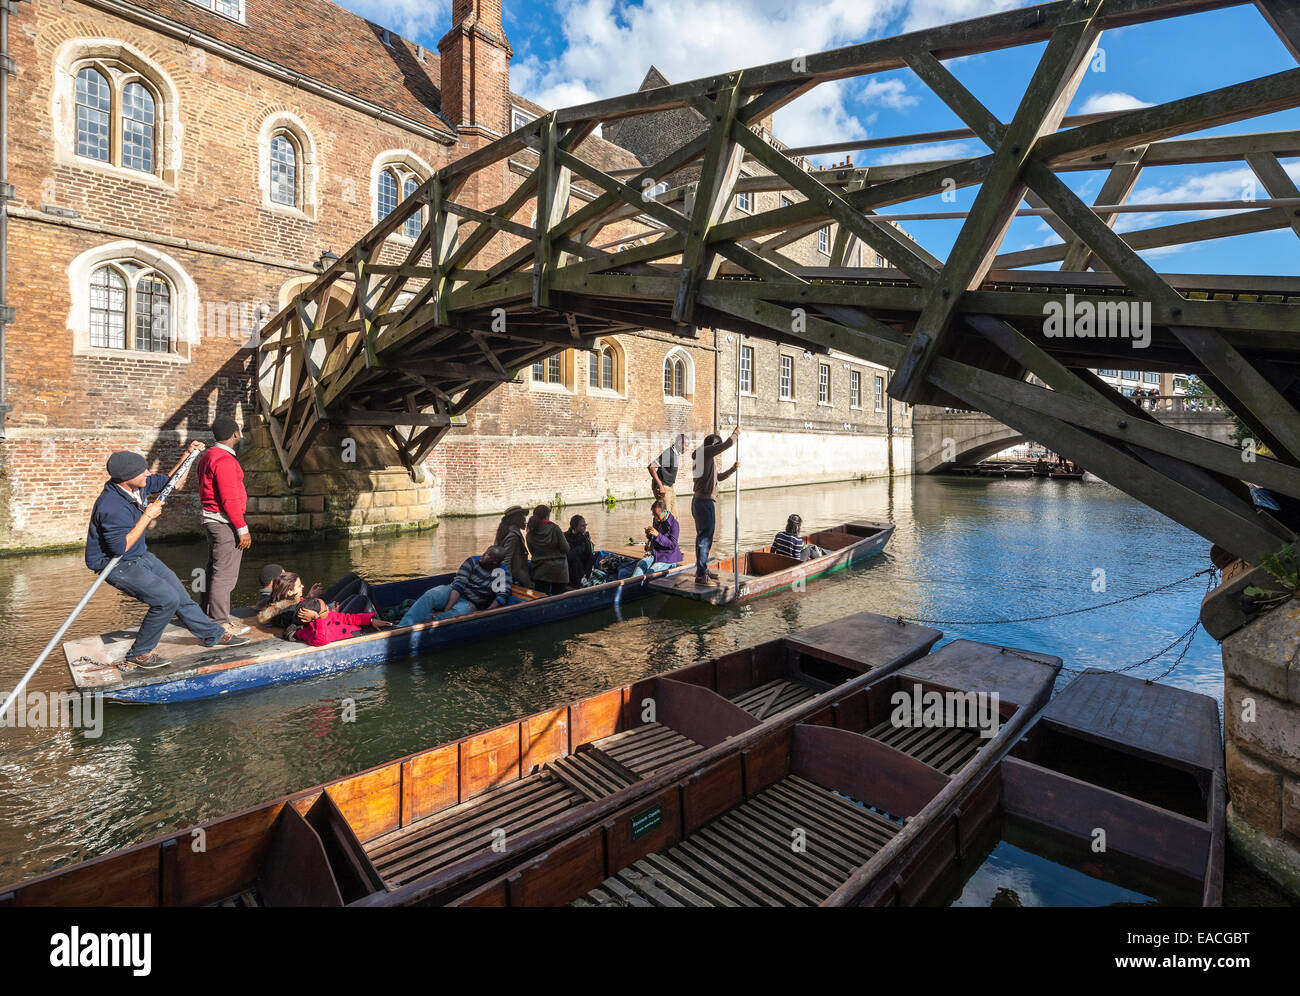 http://c7.alamy.com/comp/EACGBT/cambridge-mathematical-bridge-on-the-river-cam-at-queens-college-with-EACGBT.jpg